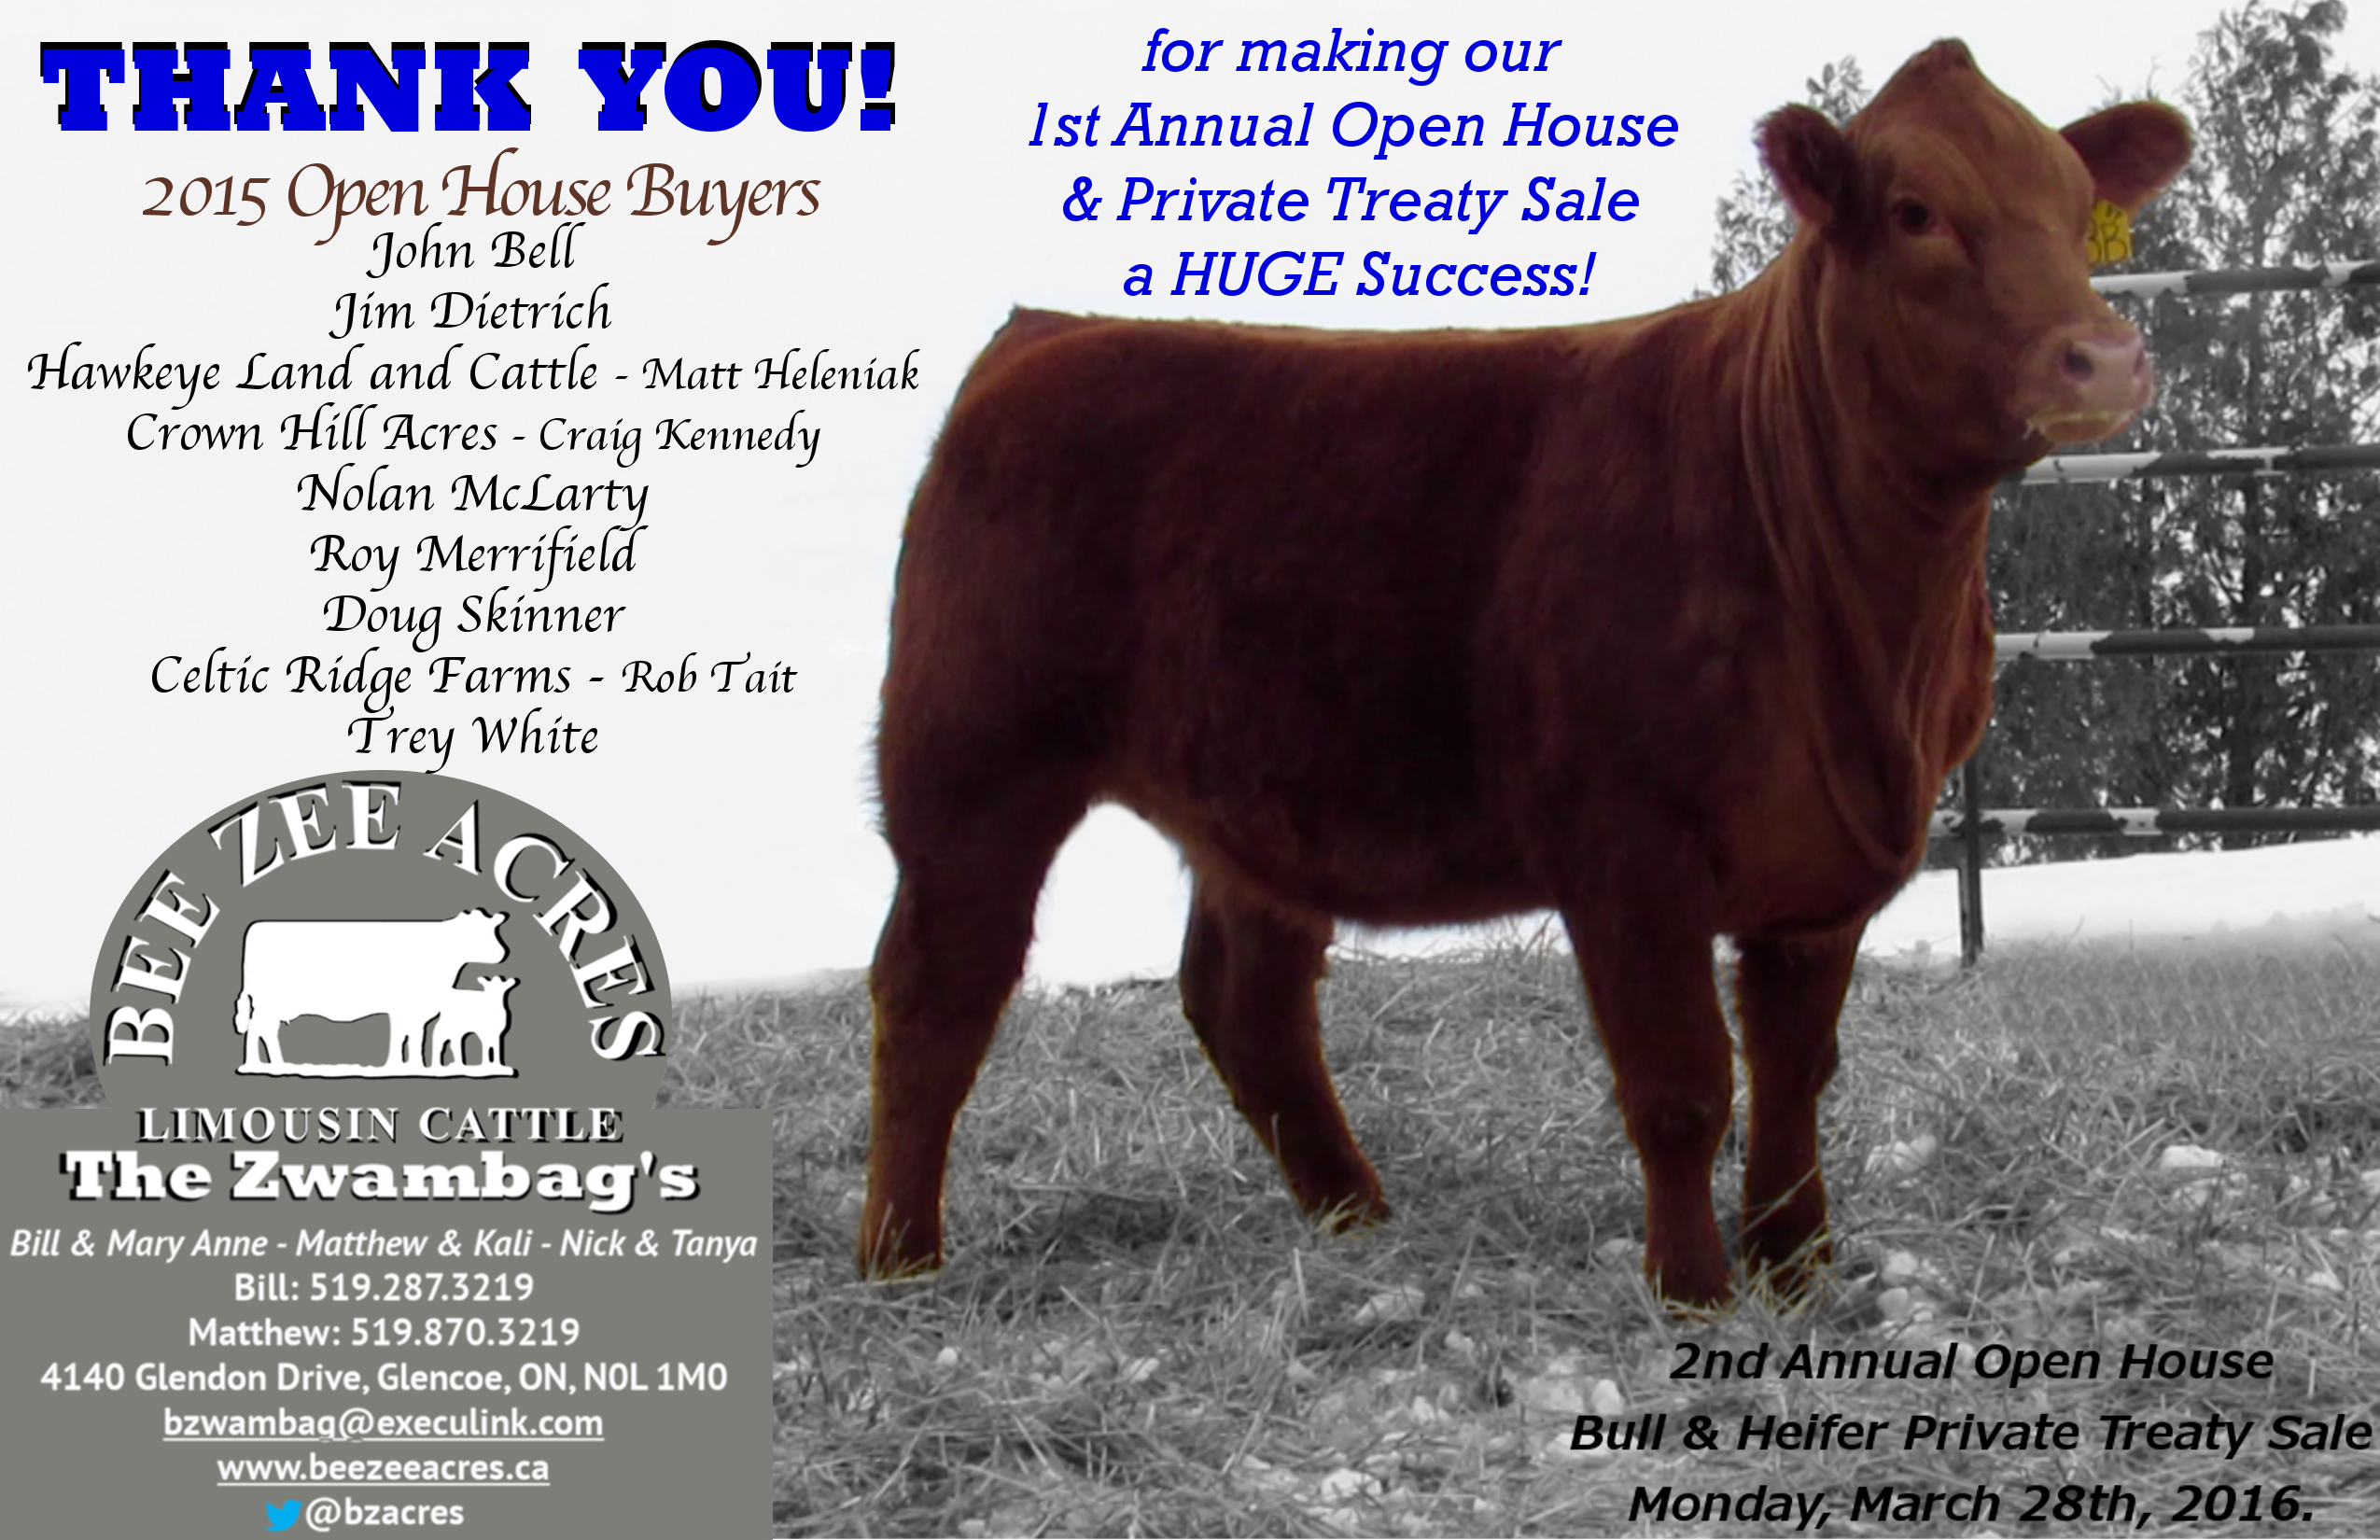 Thank You House: Thank You 2015 Open House Buyers